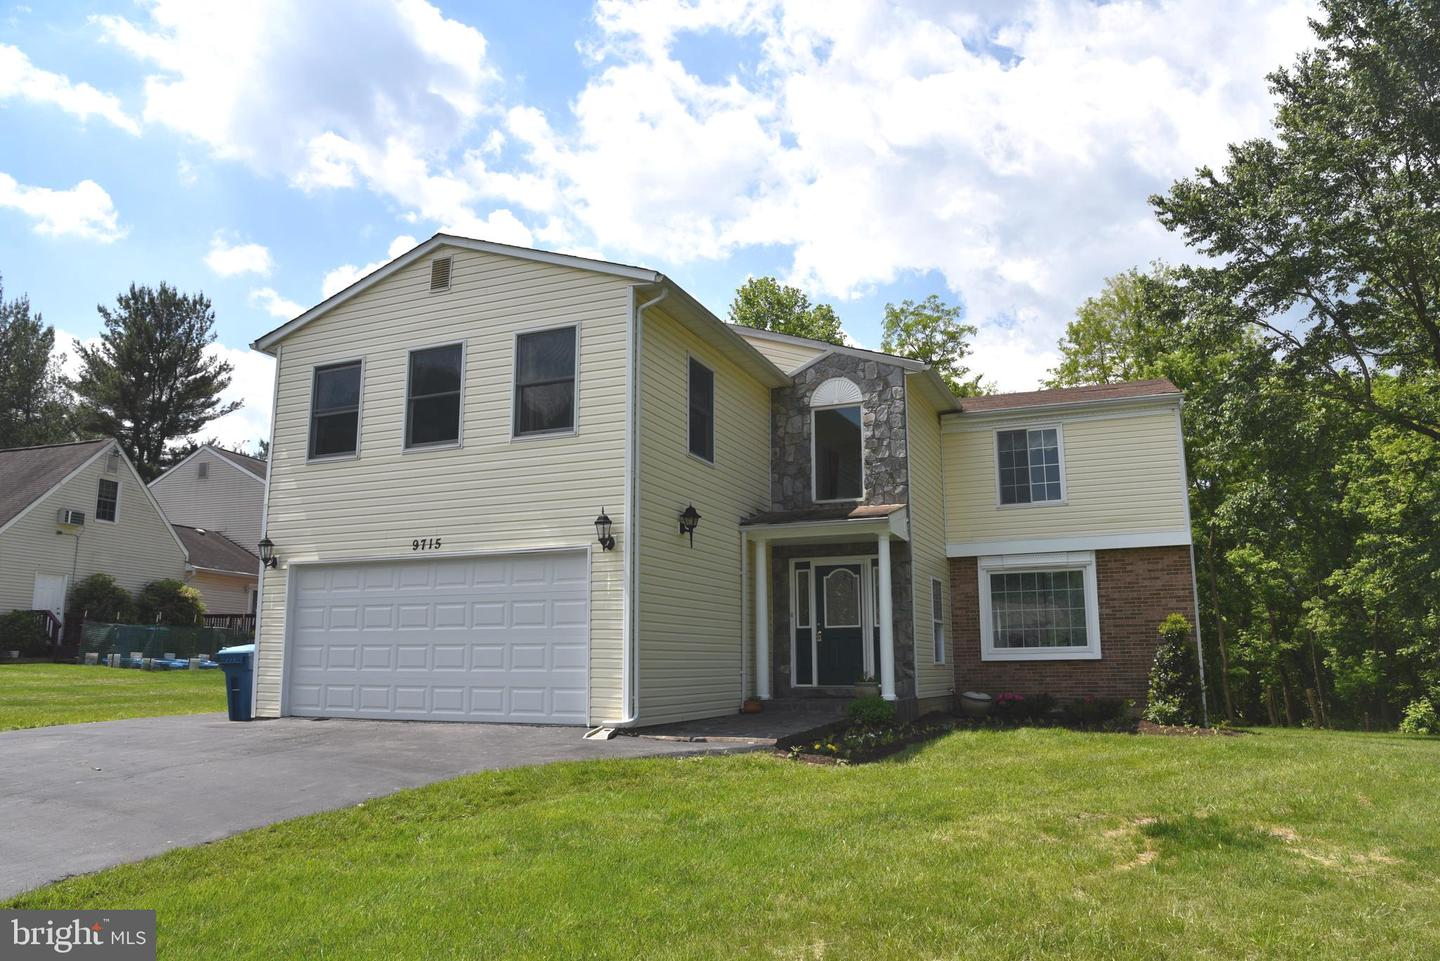 Single Family for Sale at 9715 Locust Hill Dr Great Falls, Virginia 22066 United States